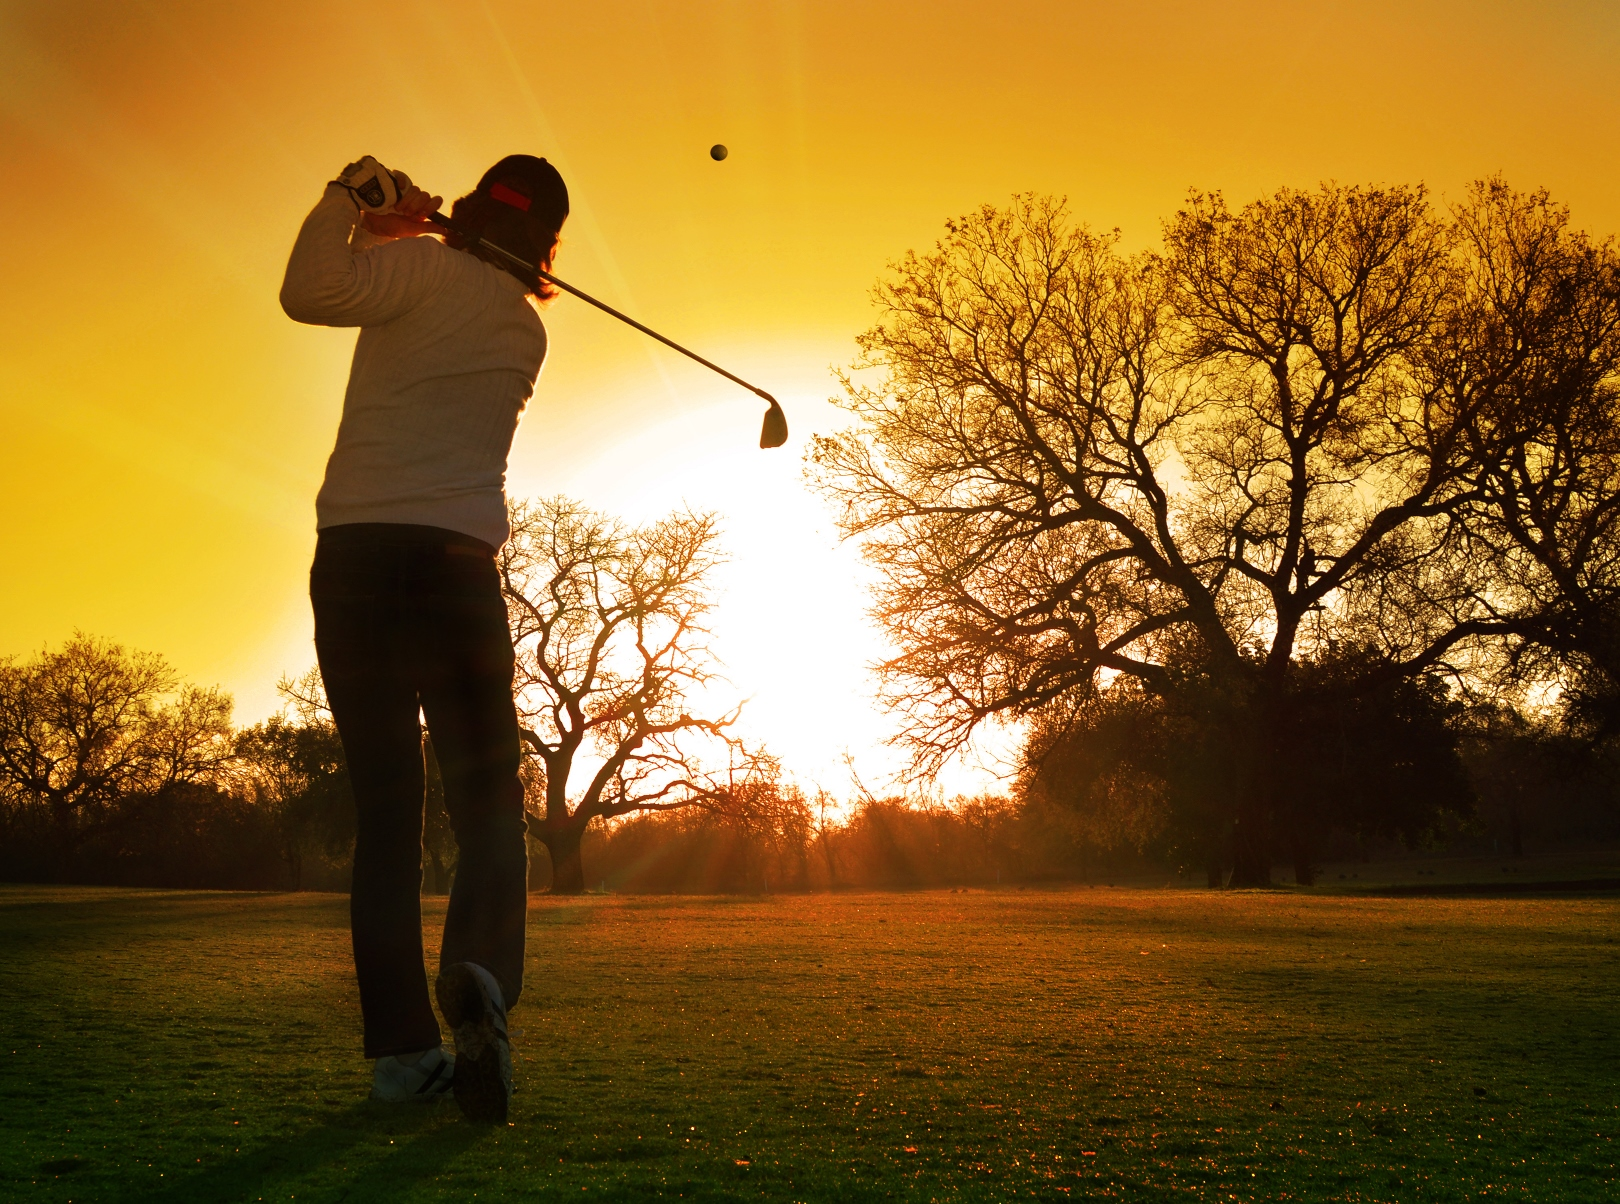 Golfer hitting into the sunset